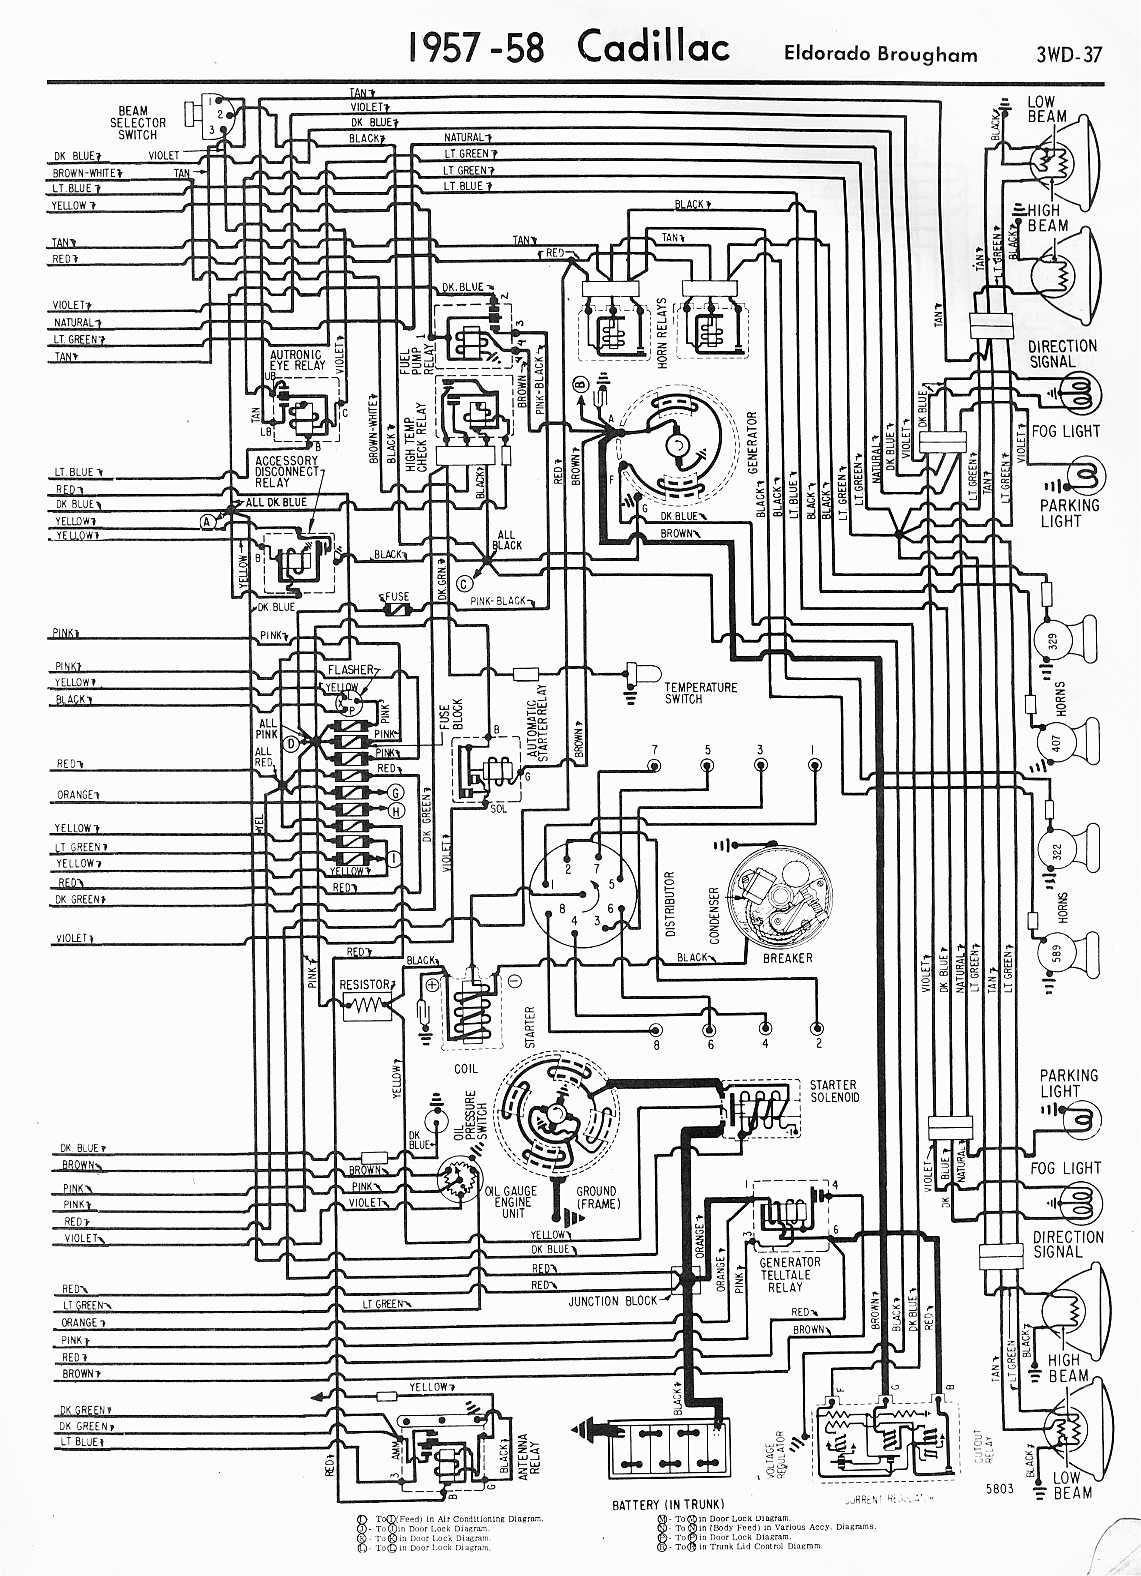 19571958 Cadillac Eldorado Brougham Wiring Diagram | All